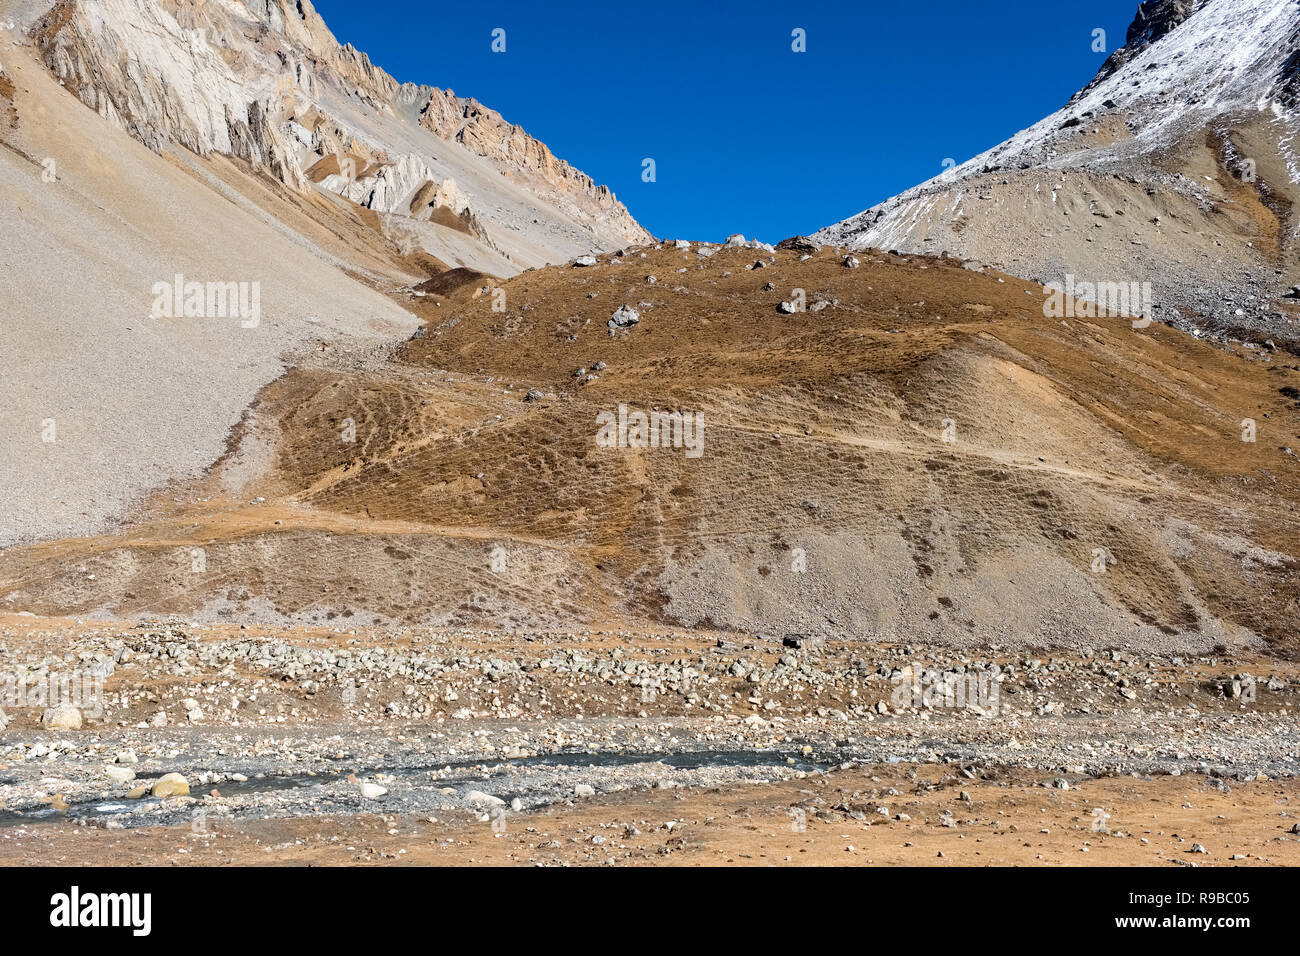 An ancient trading route crossing a pass between Nepal and Tibet in the Manaslu region of the Nepal Himalayas - Stock Image